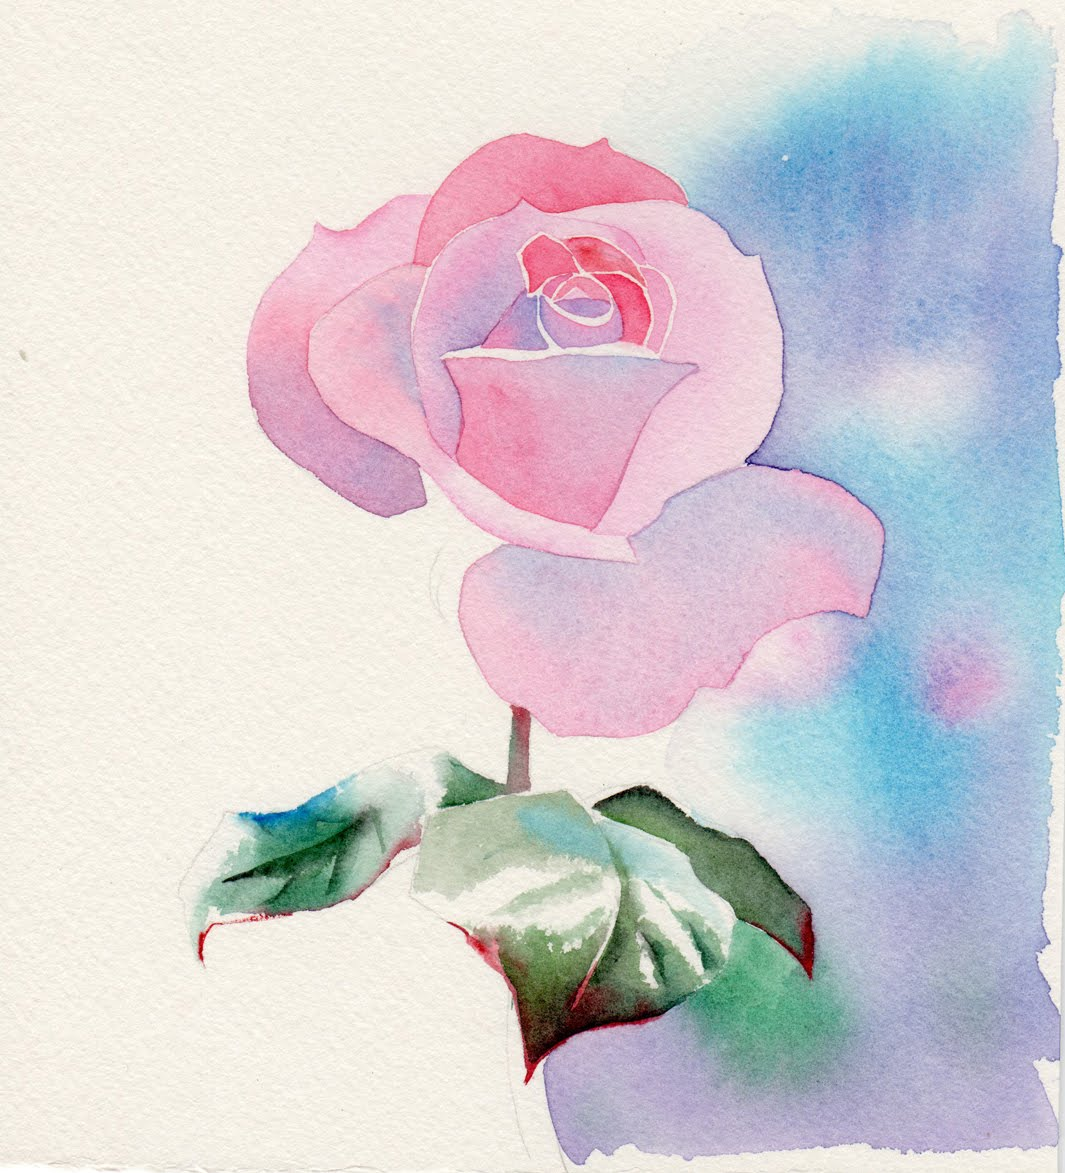 Rosenbilder Zum Geburtstag Barbara Fox Studio Perfectly Pink Watercolor Painting